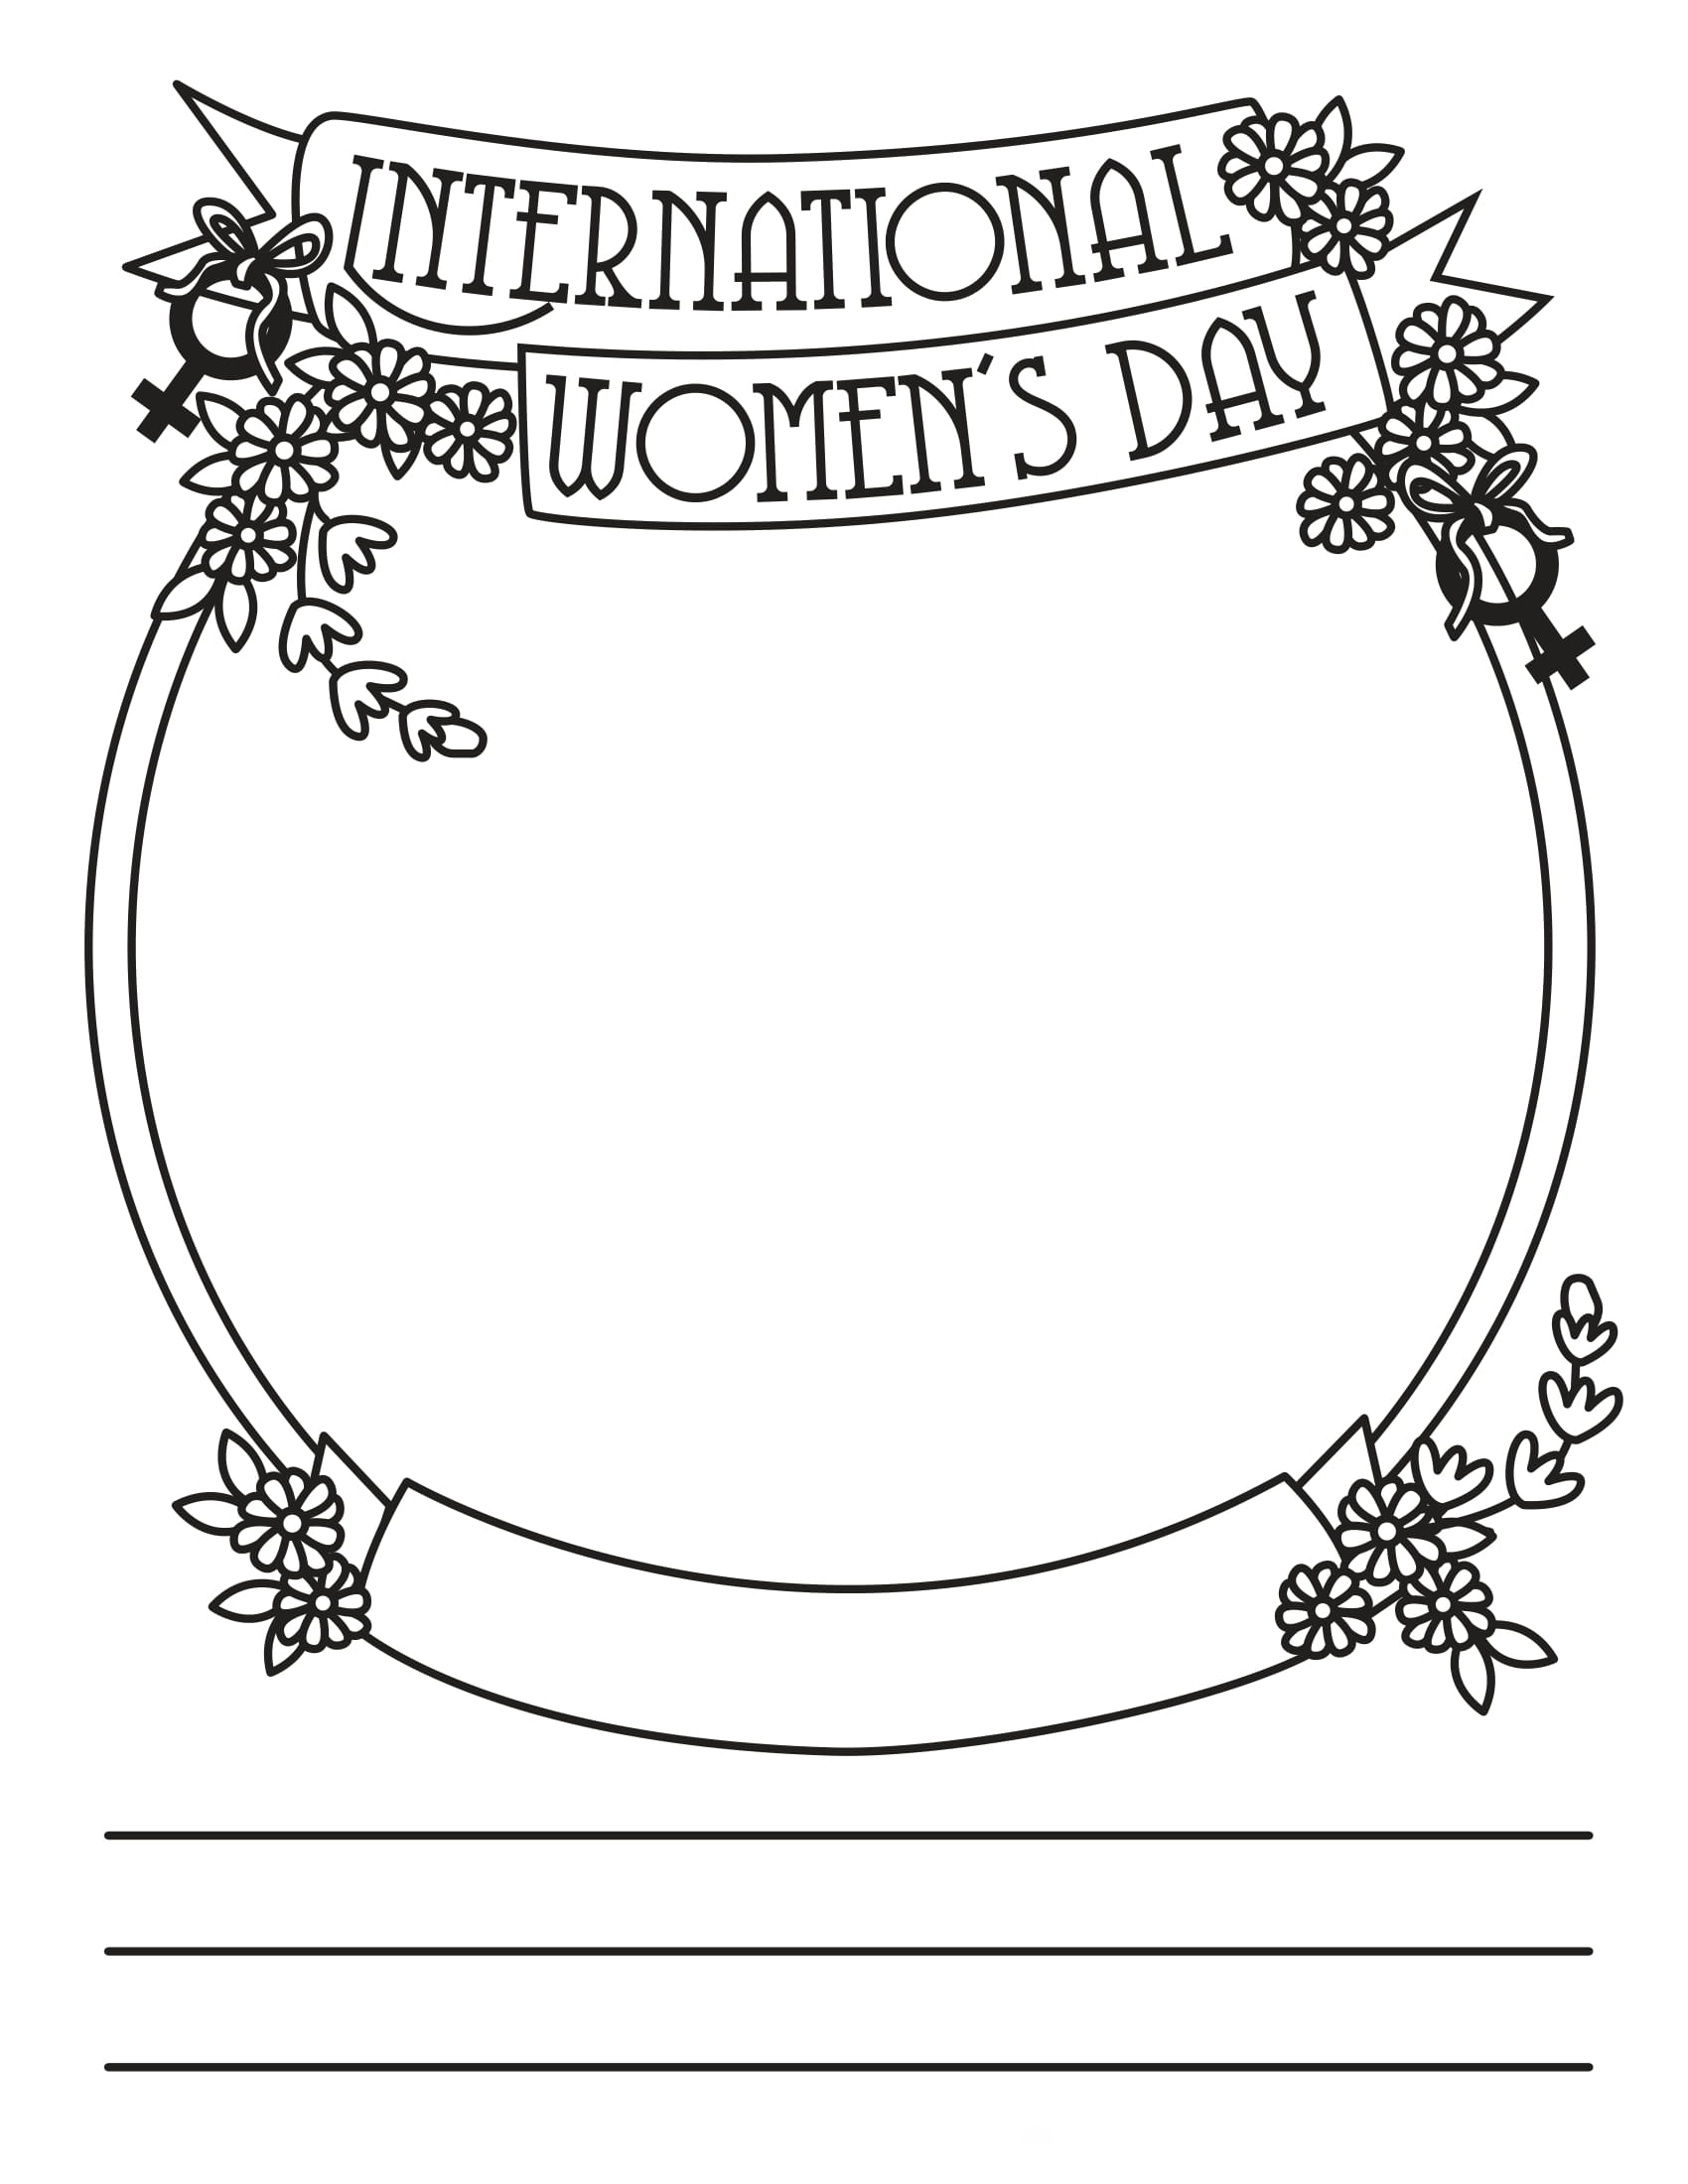 International Womens Day card Coloring Page